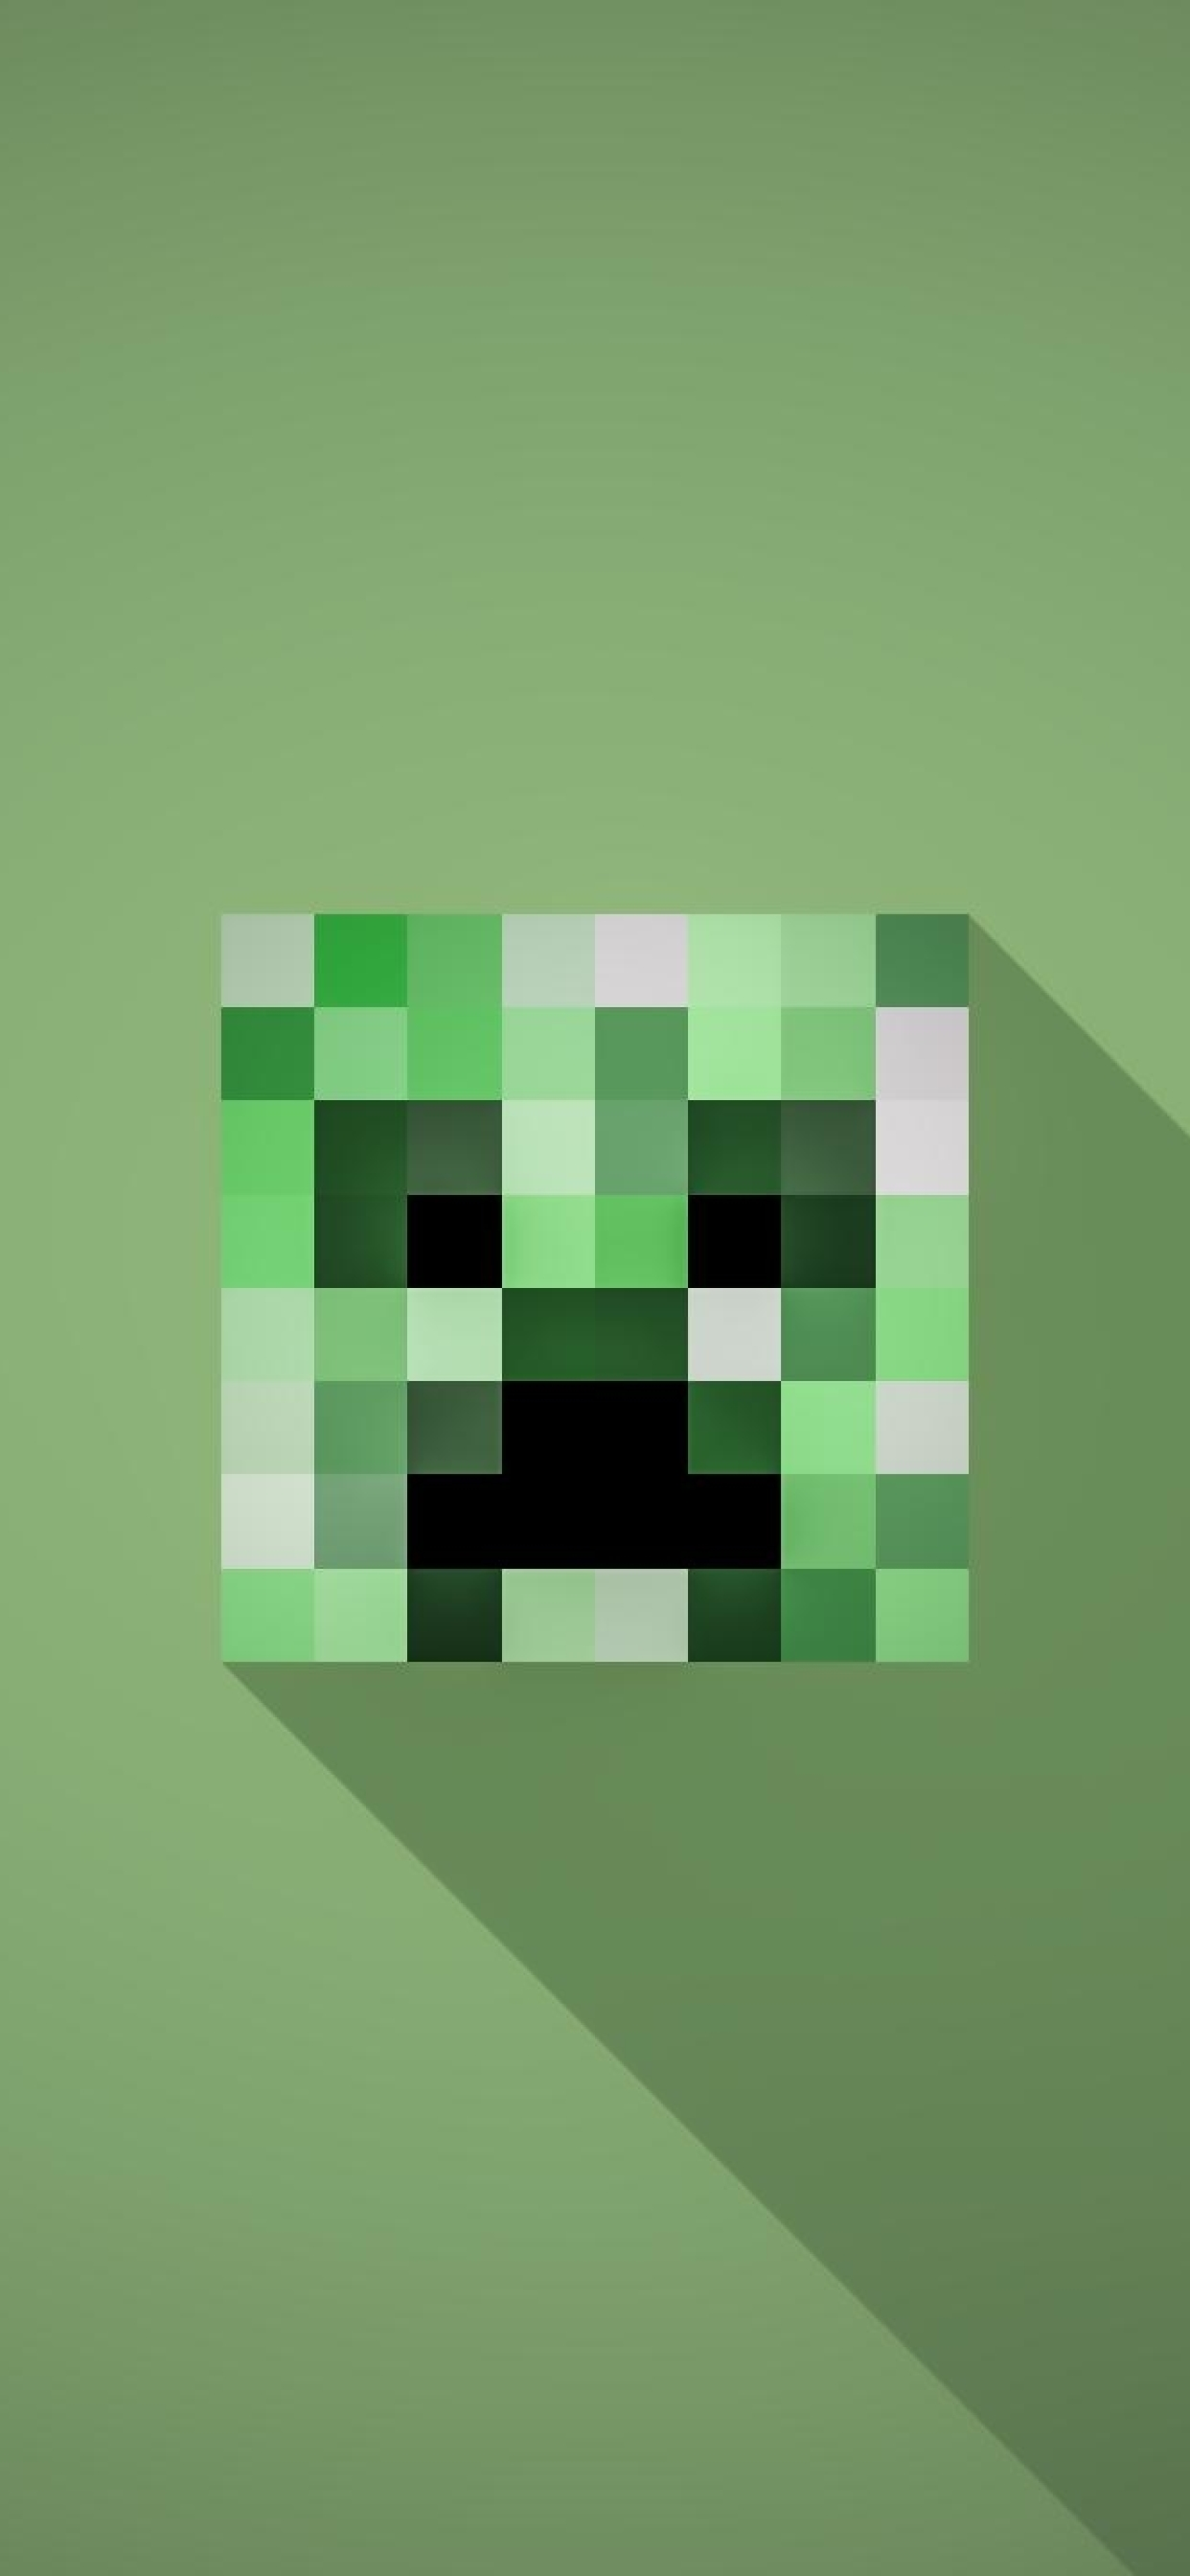 1242x2688 Minecraft Minimalist Creeper Iphone Xs Max Wallpaper Hd Minimalist 4k Wallpapers Images Photos And Background